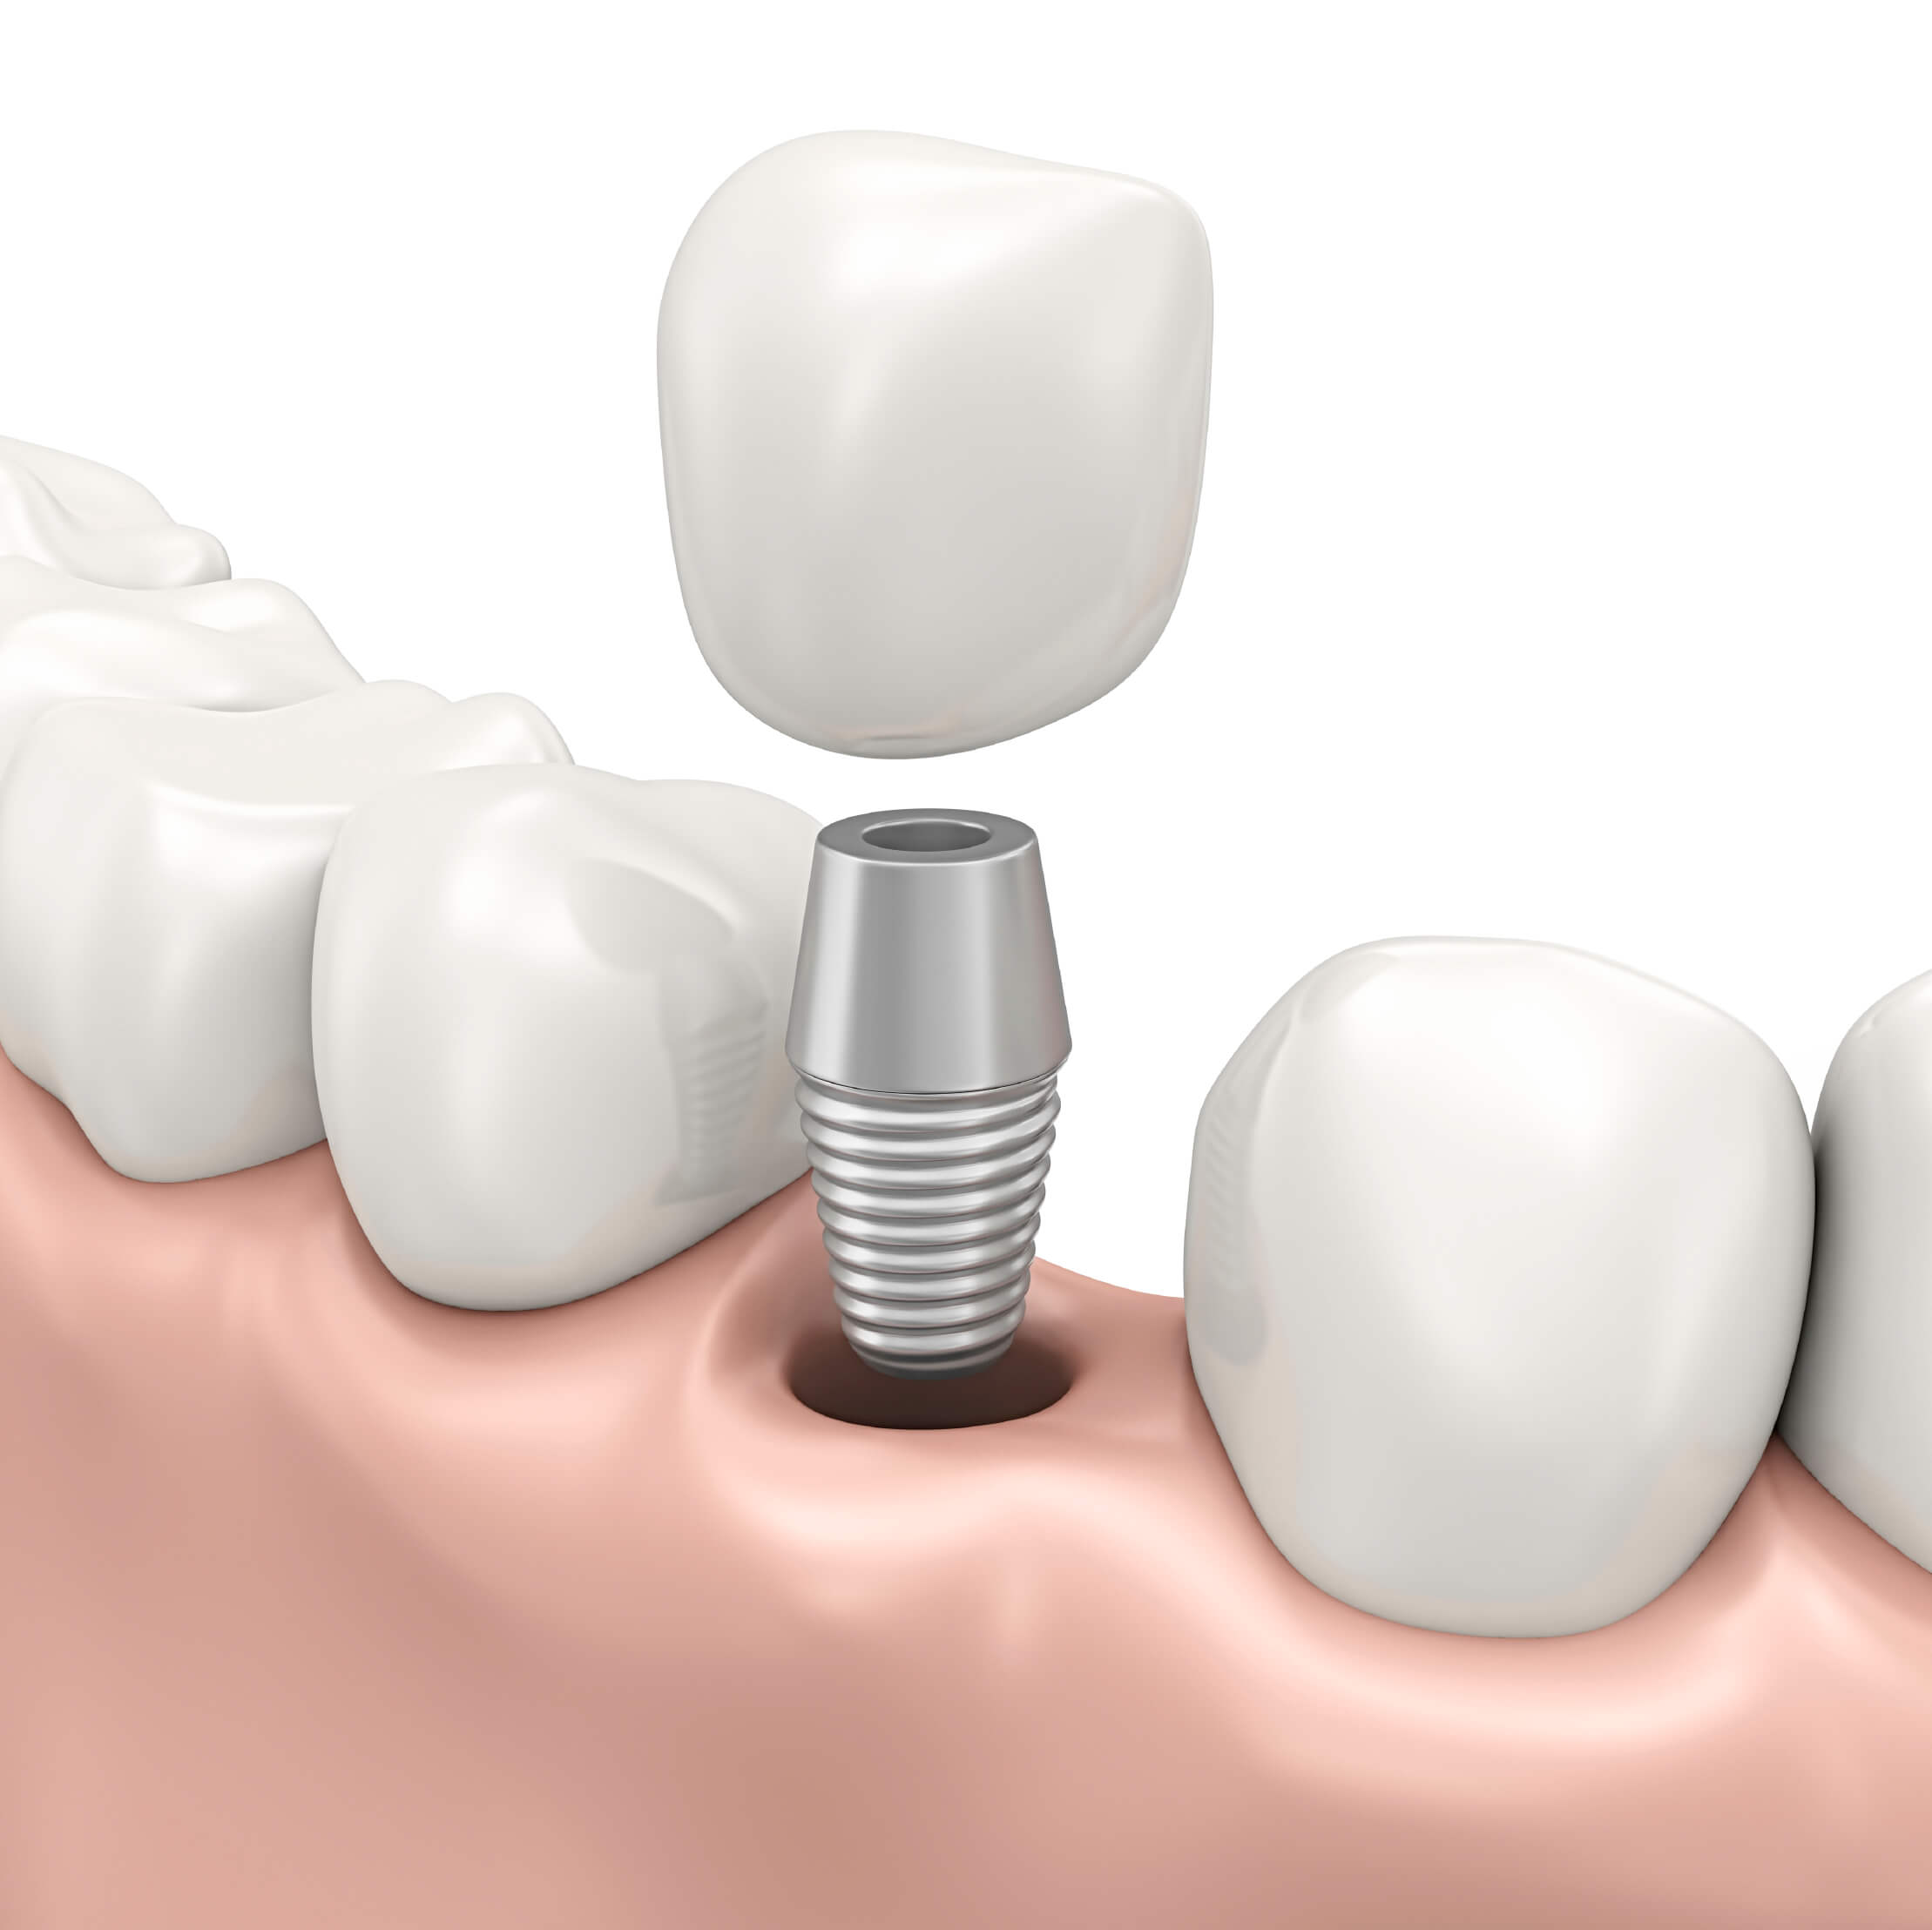 Dental implant restorations in Chicago